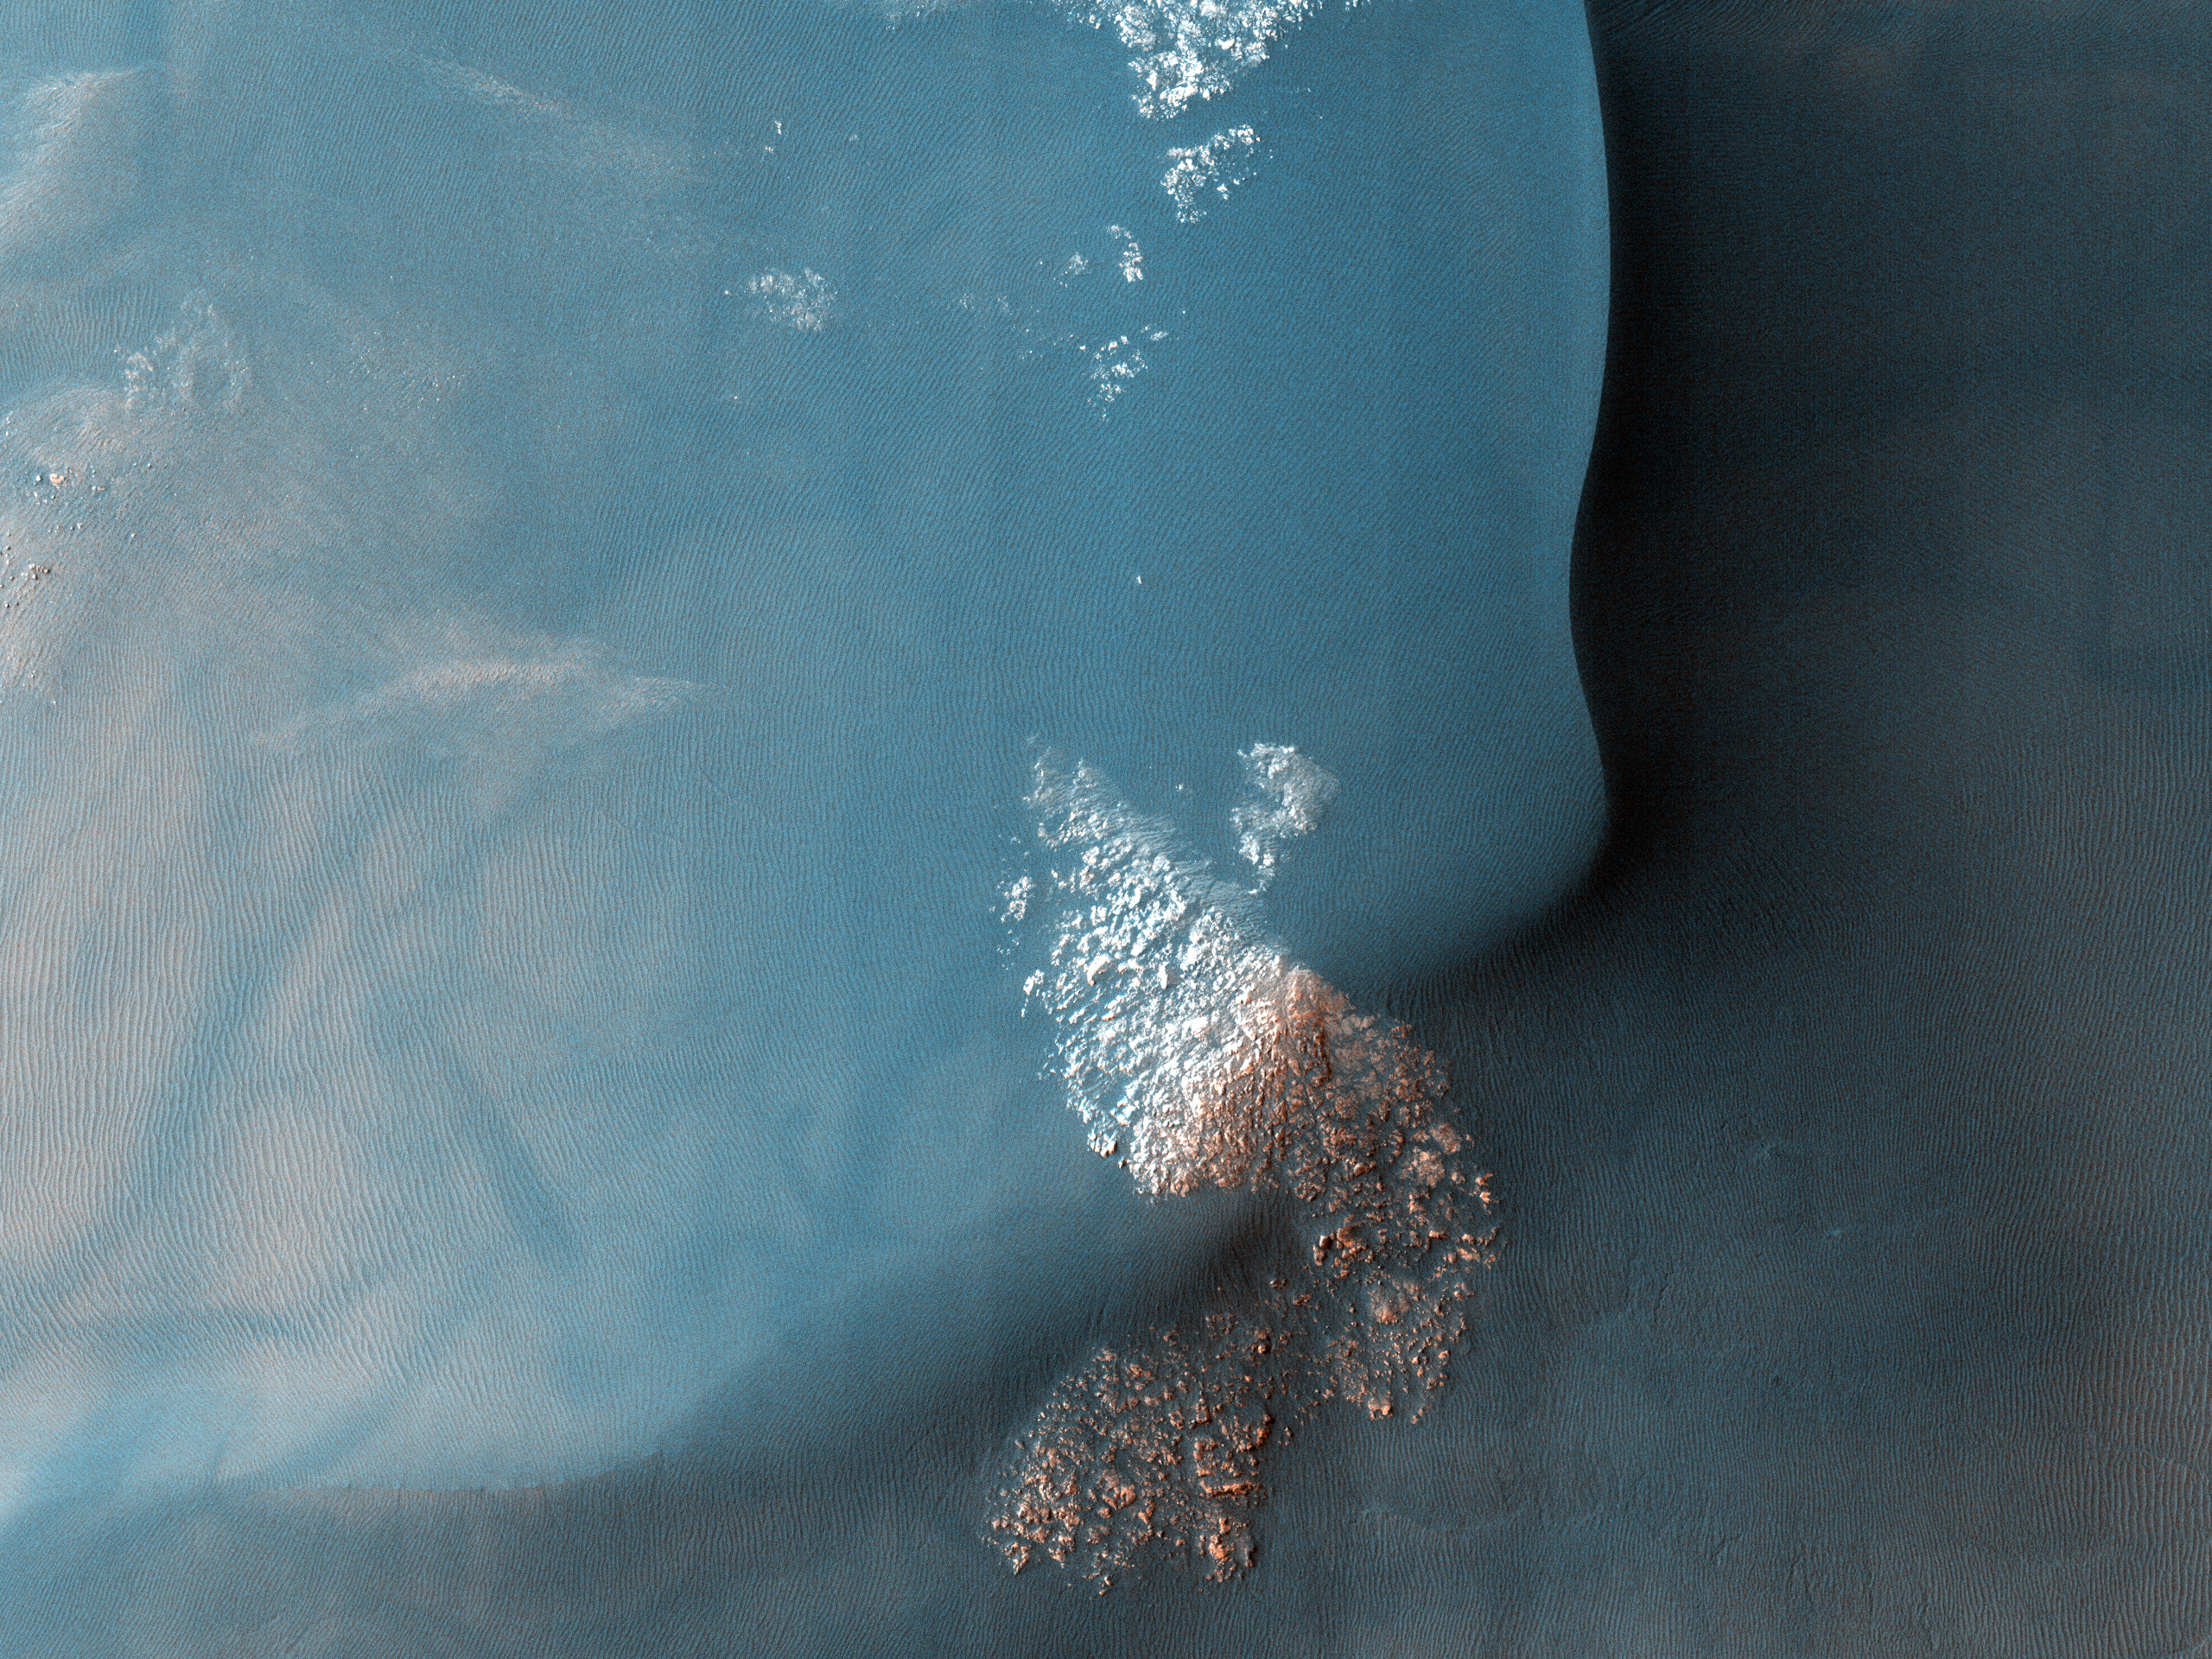 Southern Hemisphere Crater with a Dune Field